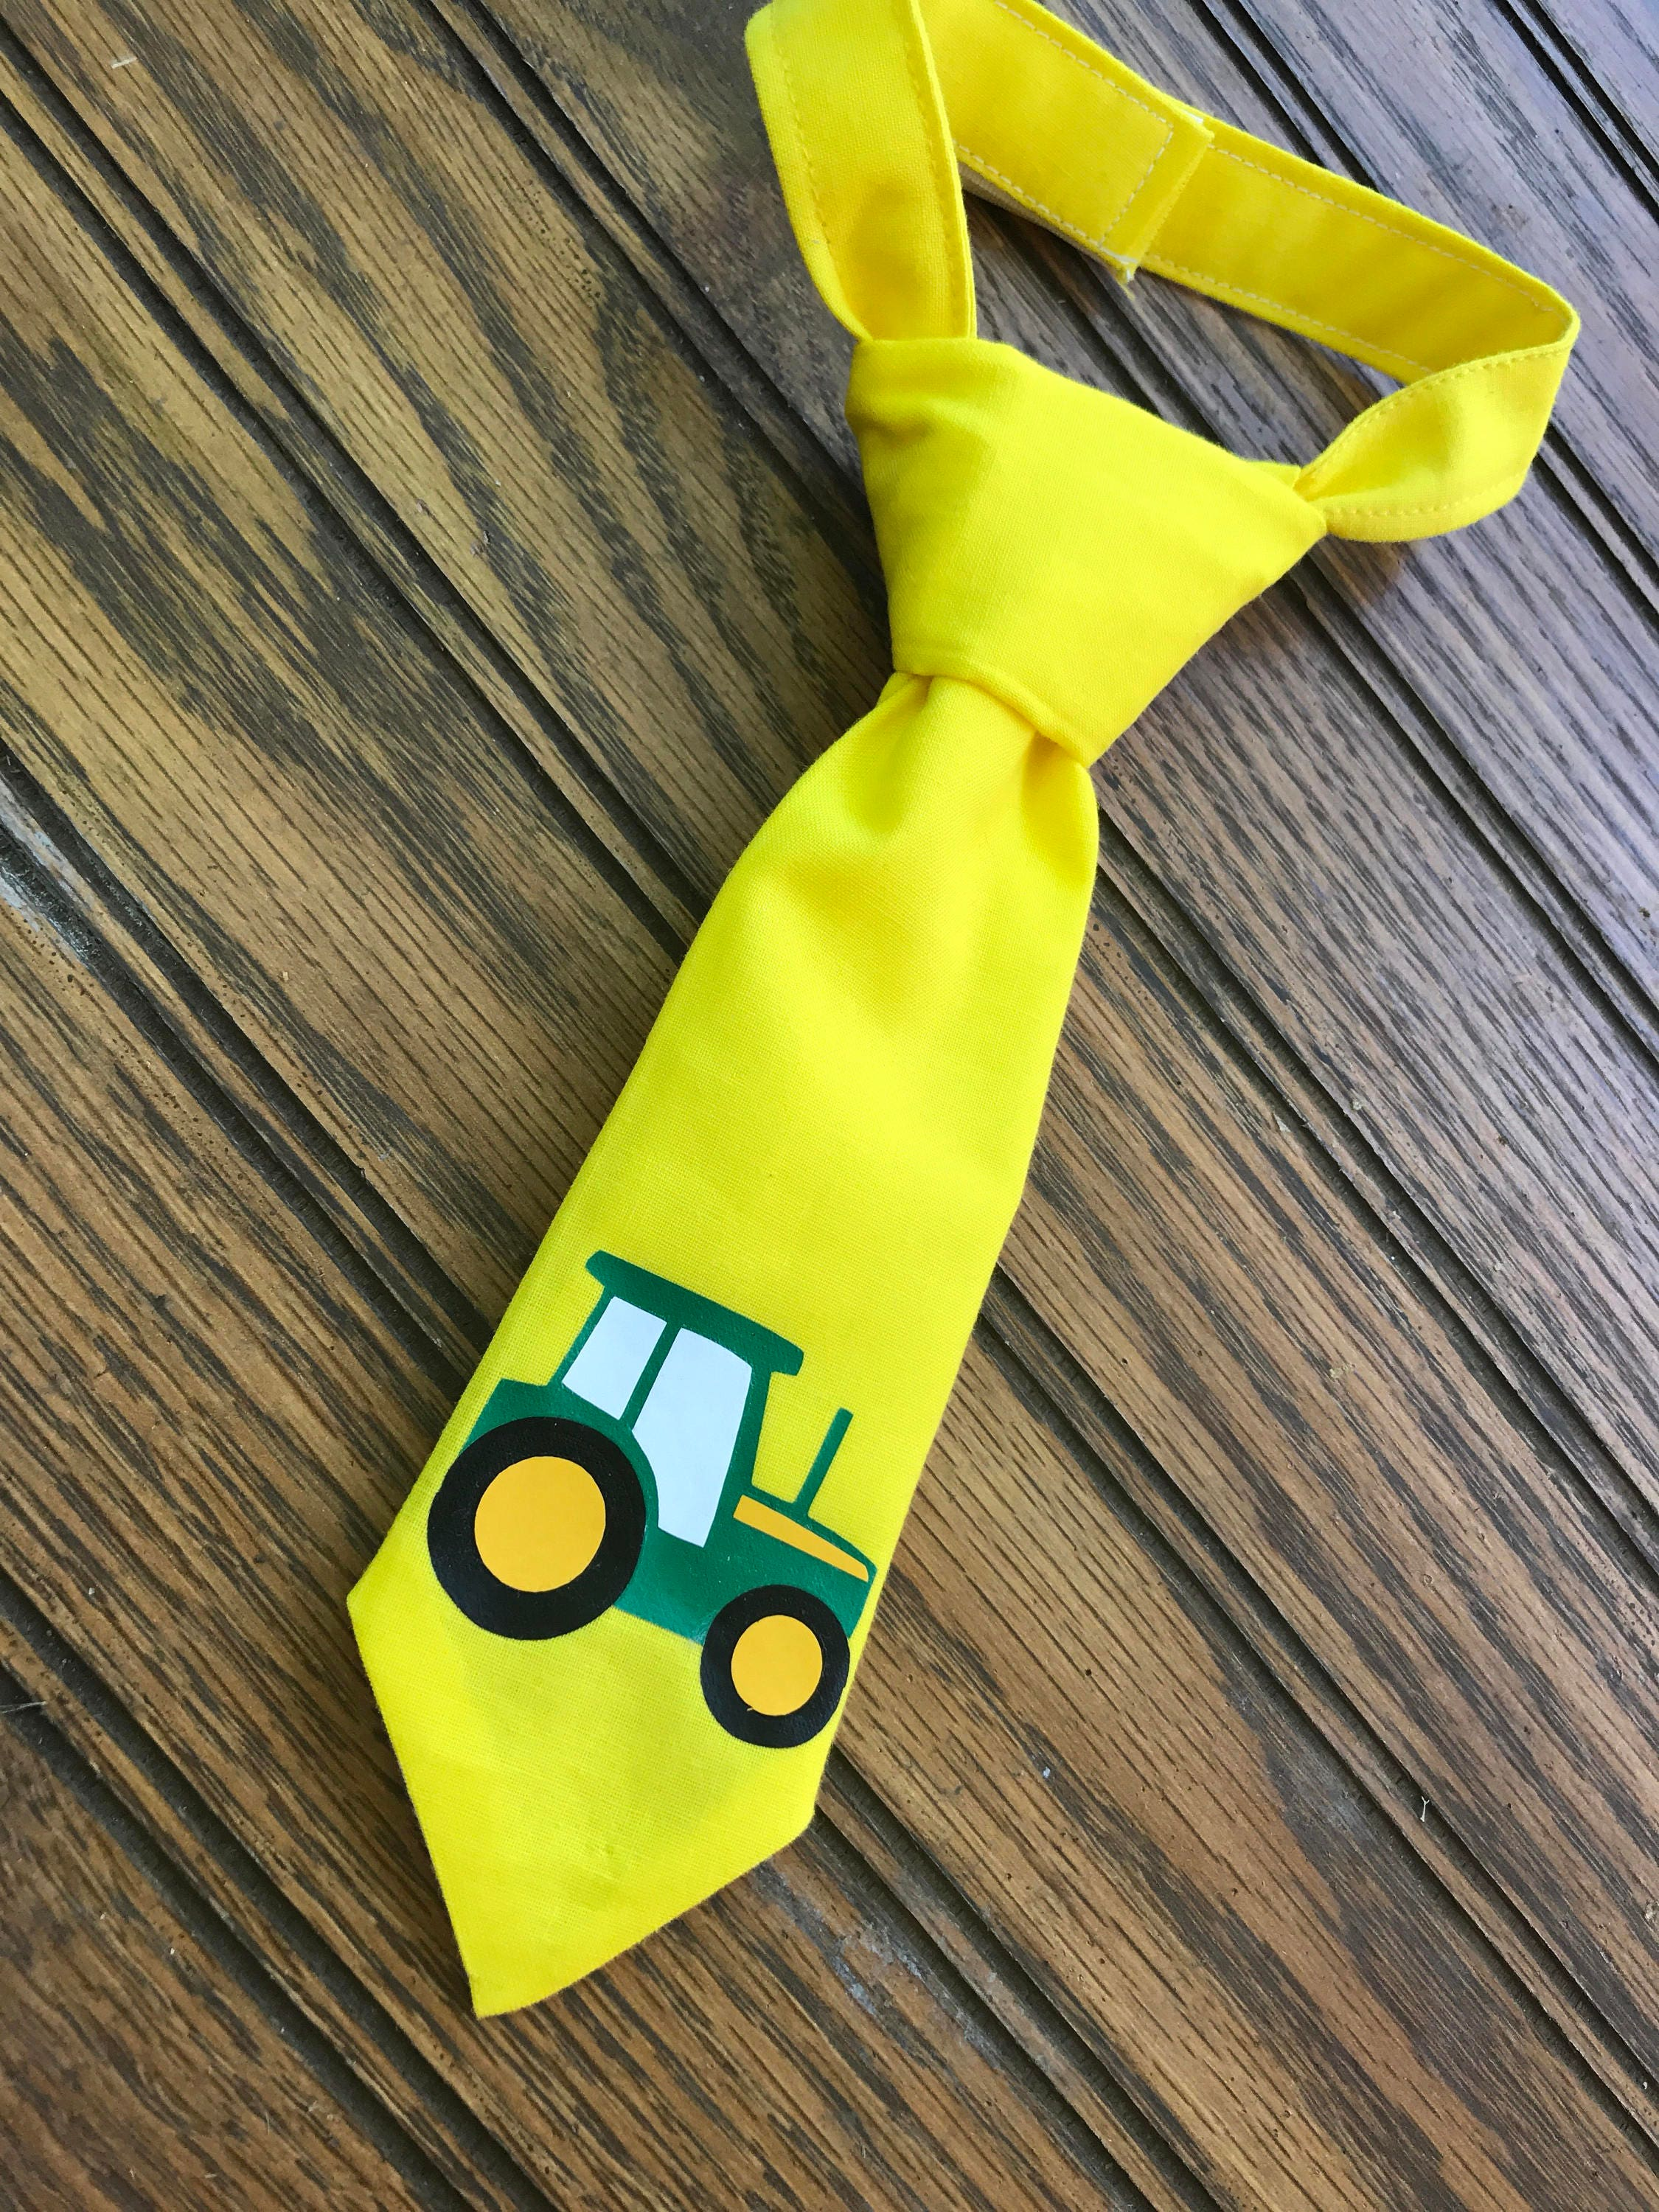 John Derre Tractor Smash Cake Birthday Outfit